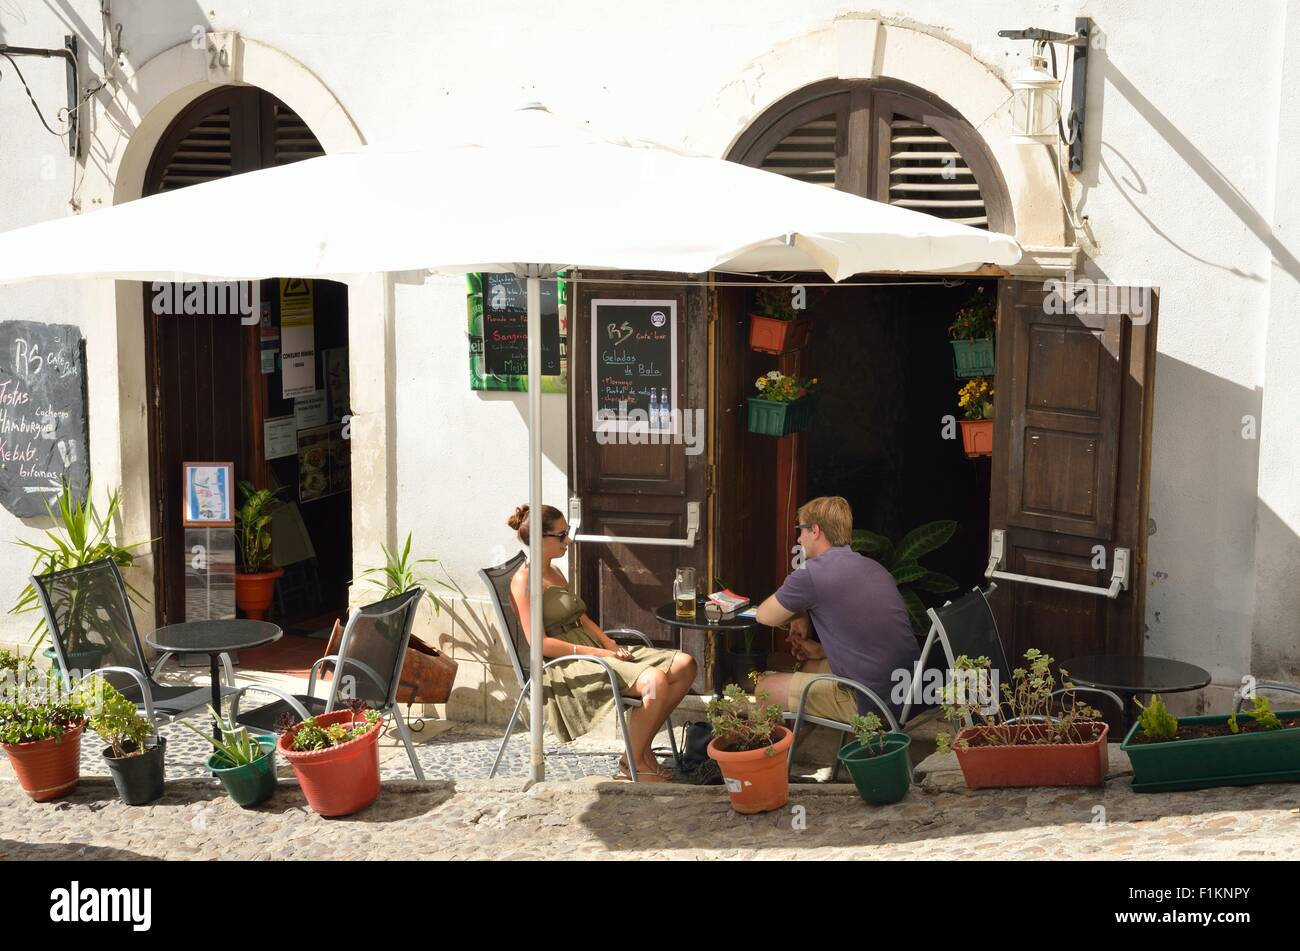 A couple having a beer at an outdoor bar in the city of Coimbra, Portugal - Stock Image